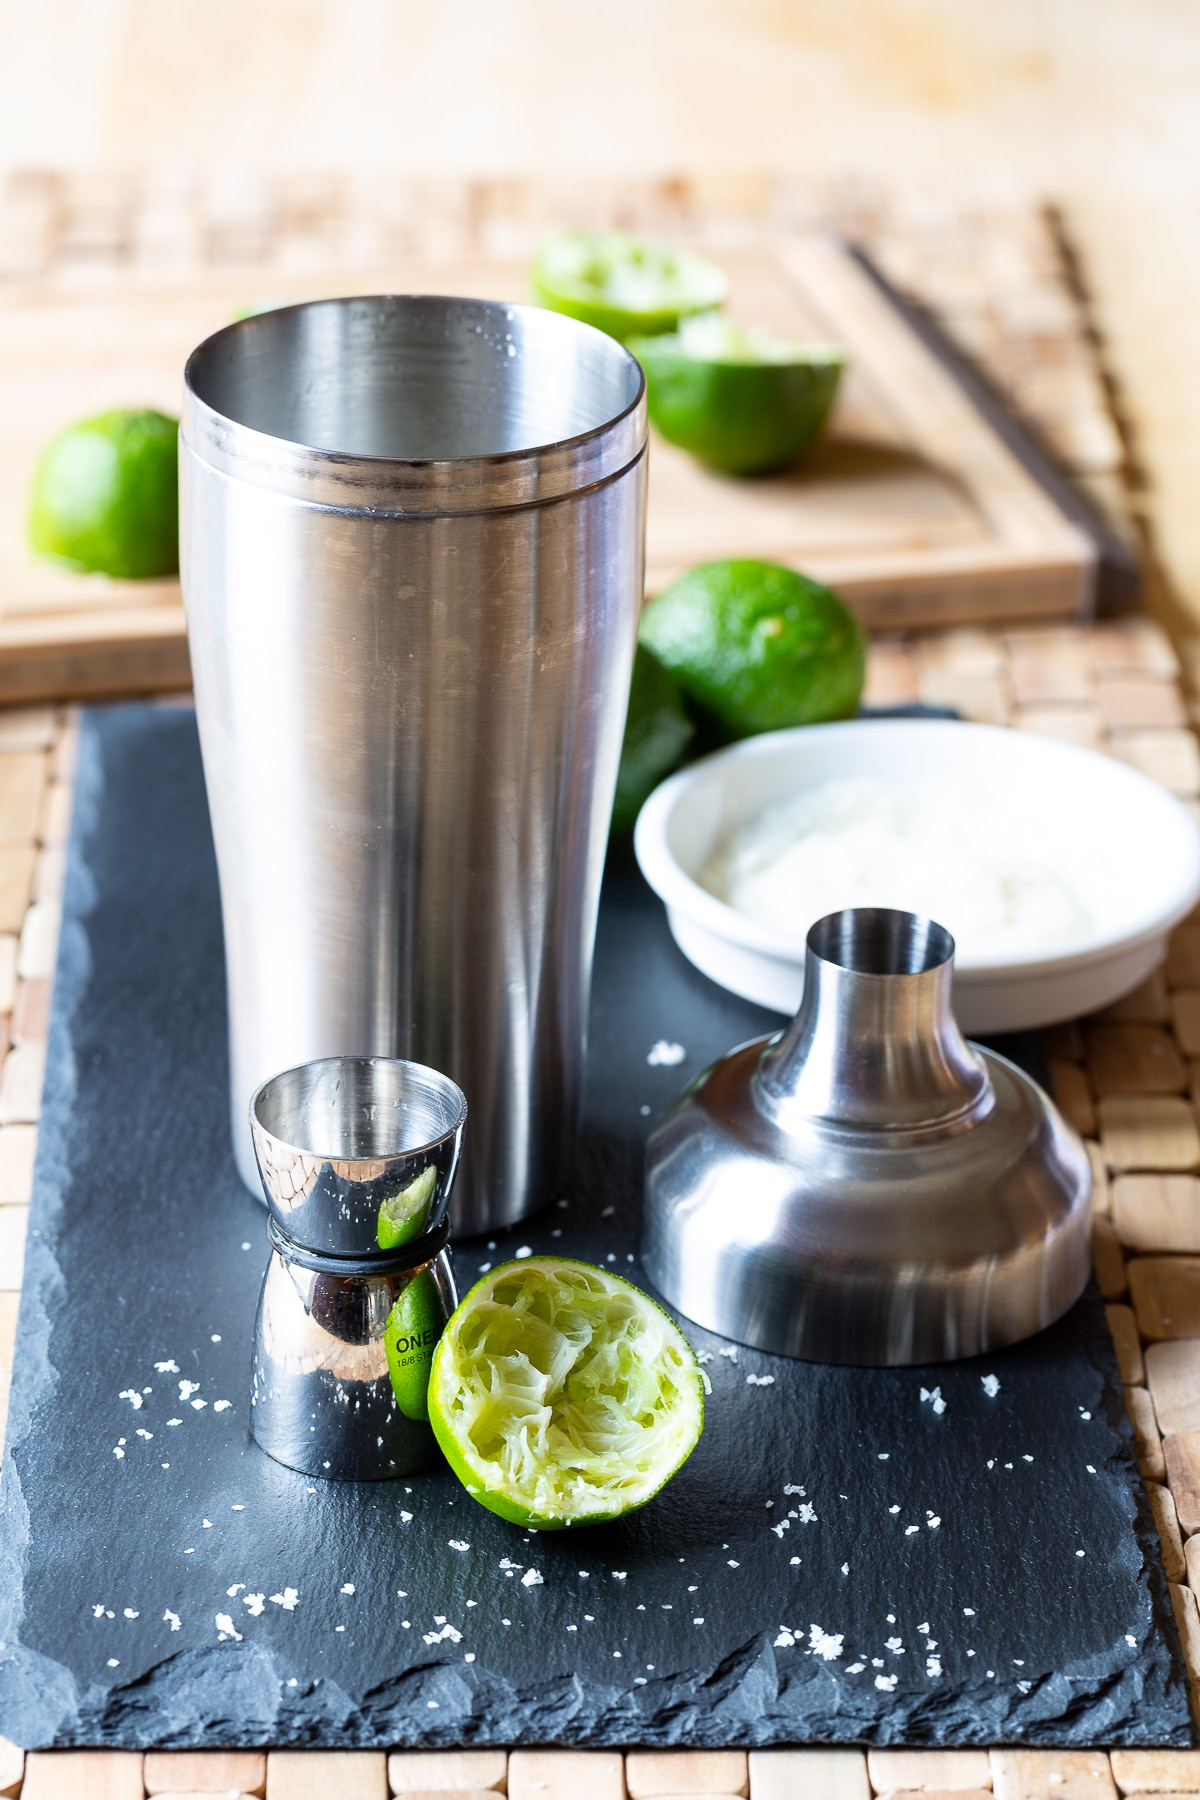 How to Make Margaritas #CincodeMayo #Margaritas #margs #Mexican #Cocktails #tequila